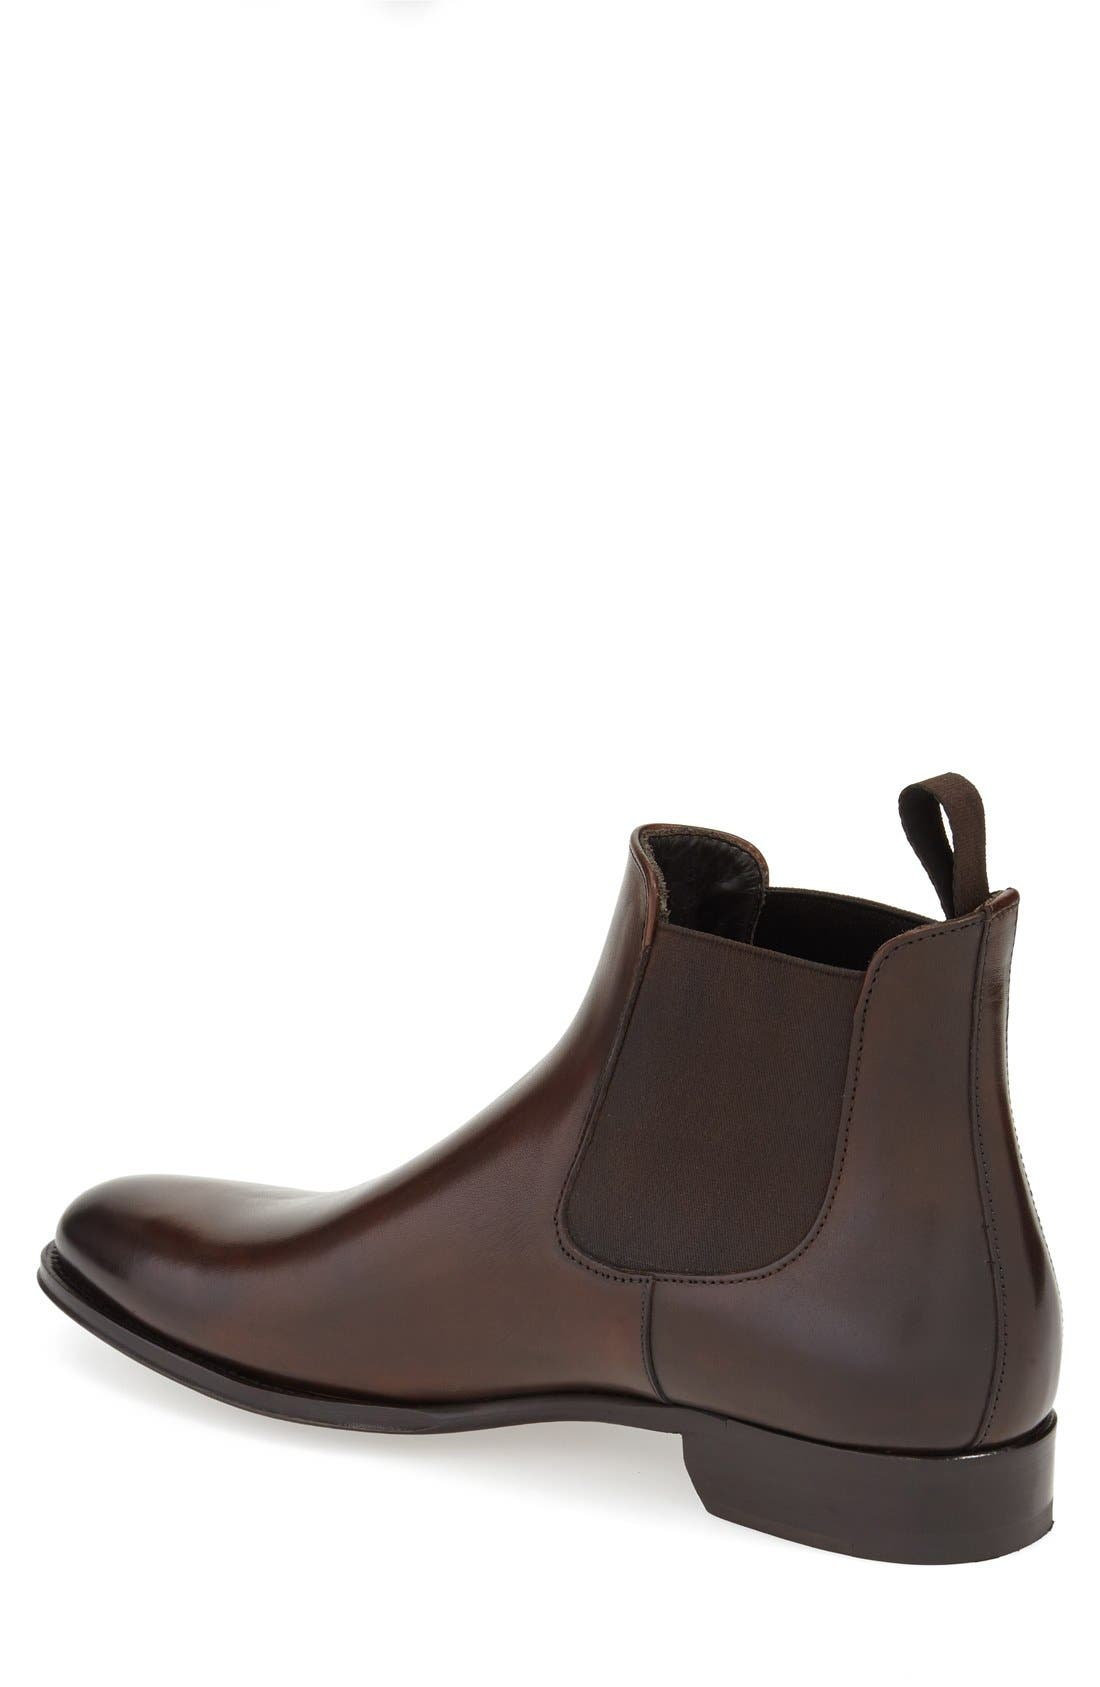 Toby Chelsea Boot,                             Alternate thumbnail 3, color,                             PRAGA TMORO